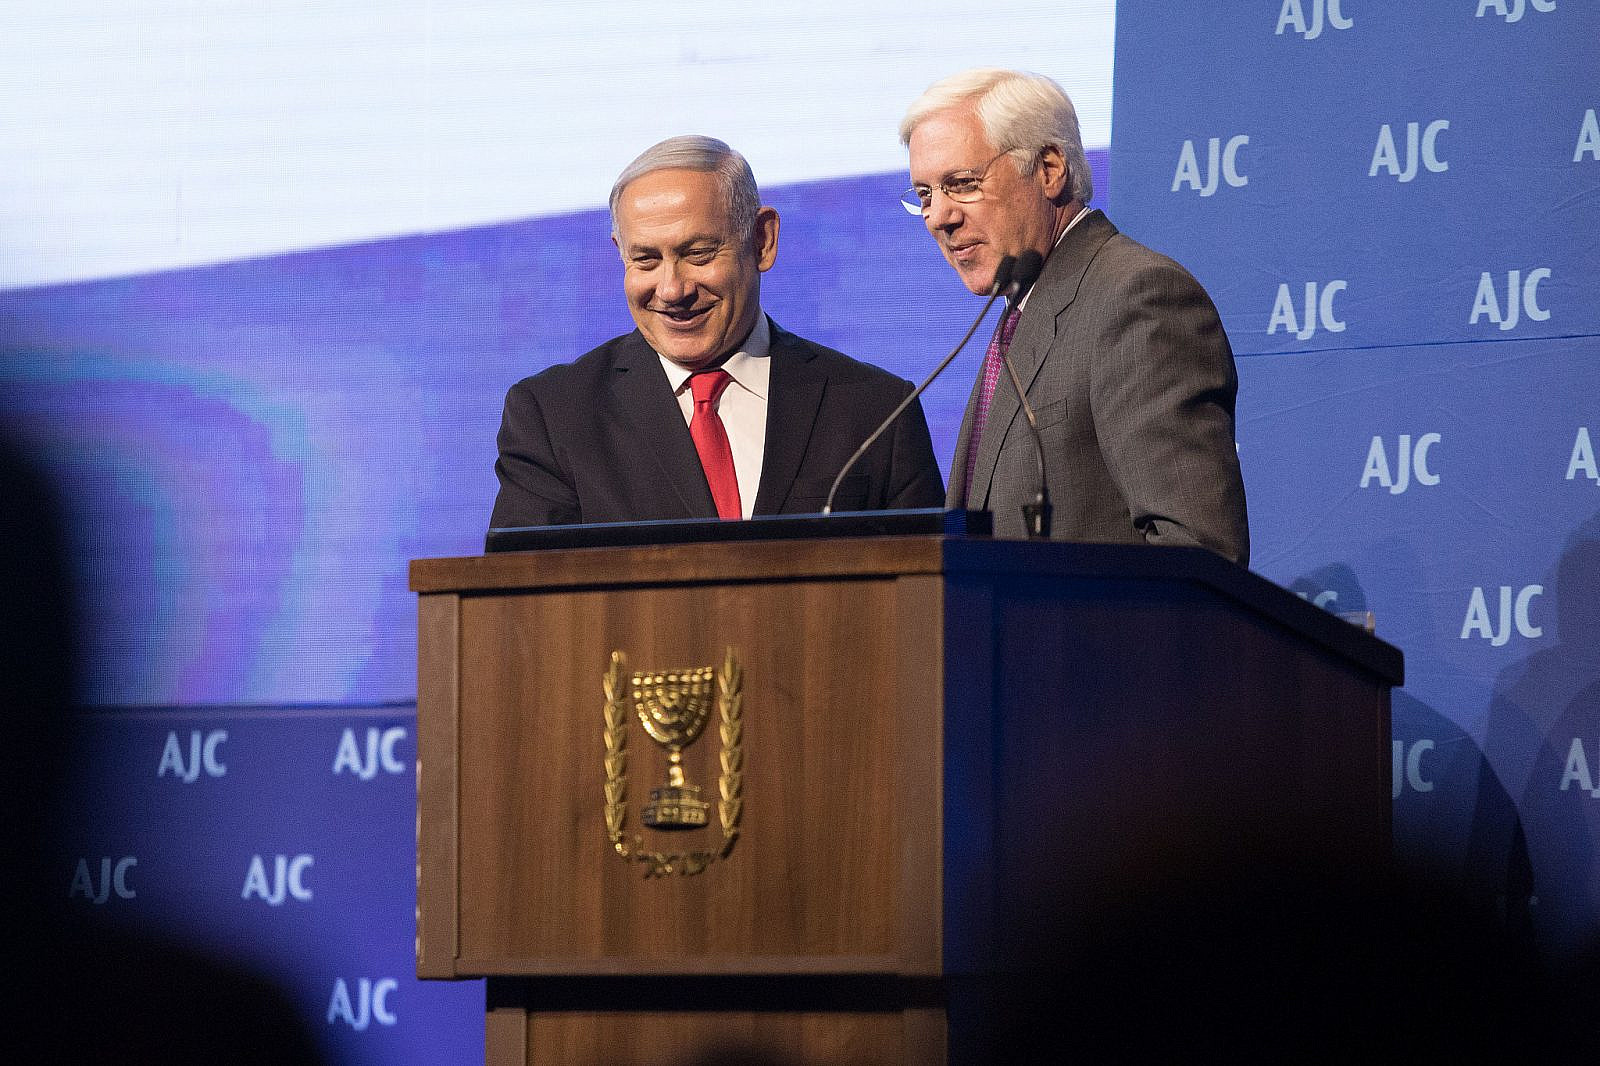 Prime Minister Benjamin Netanyahu speaks at the American Jewish Committee (AJC) Global Forum, in the Jerusalem Convention Center, on June 10, 2018. (Noam Revkin Fenton/Flash90)